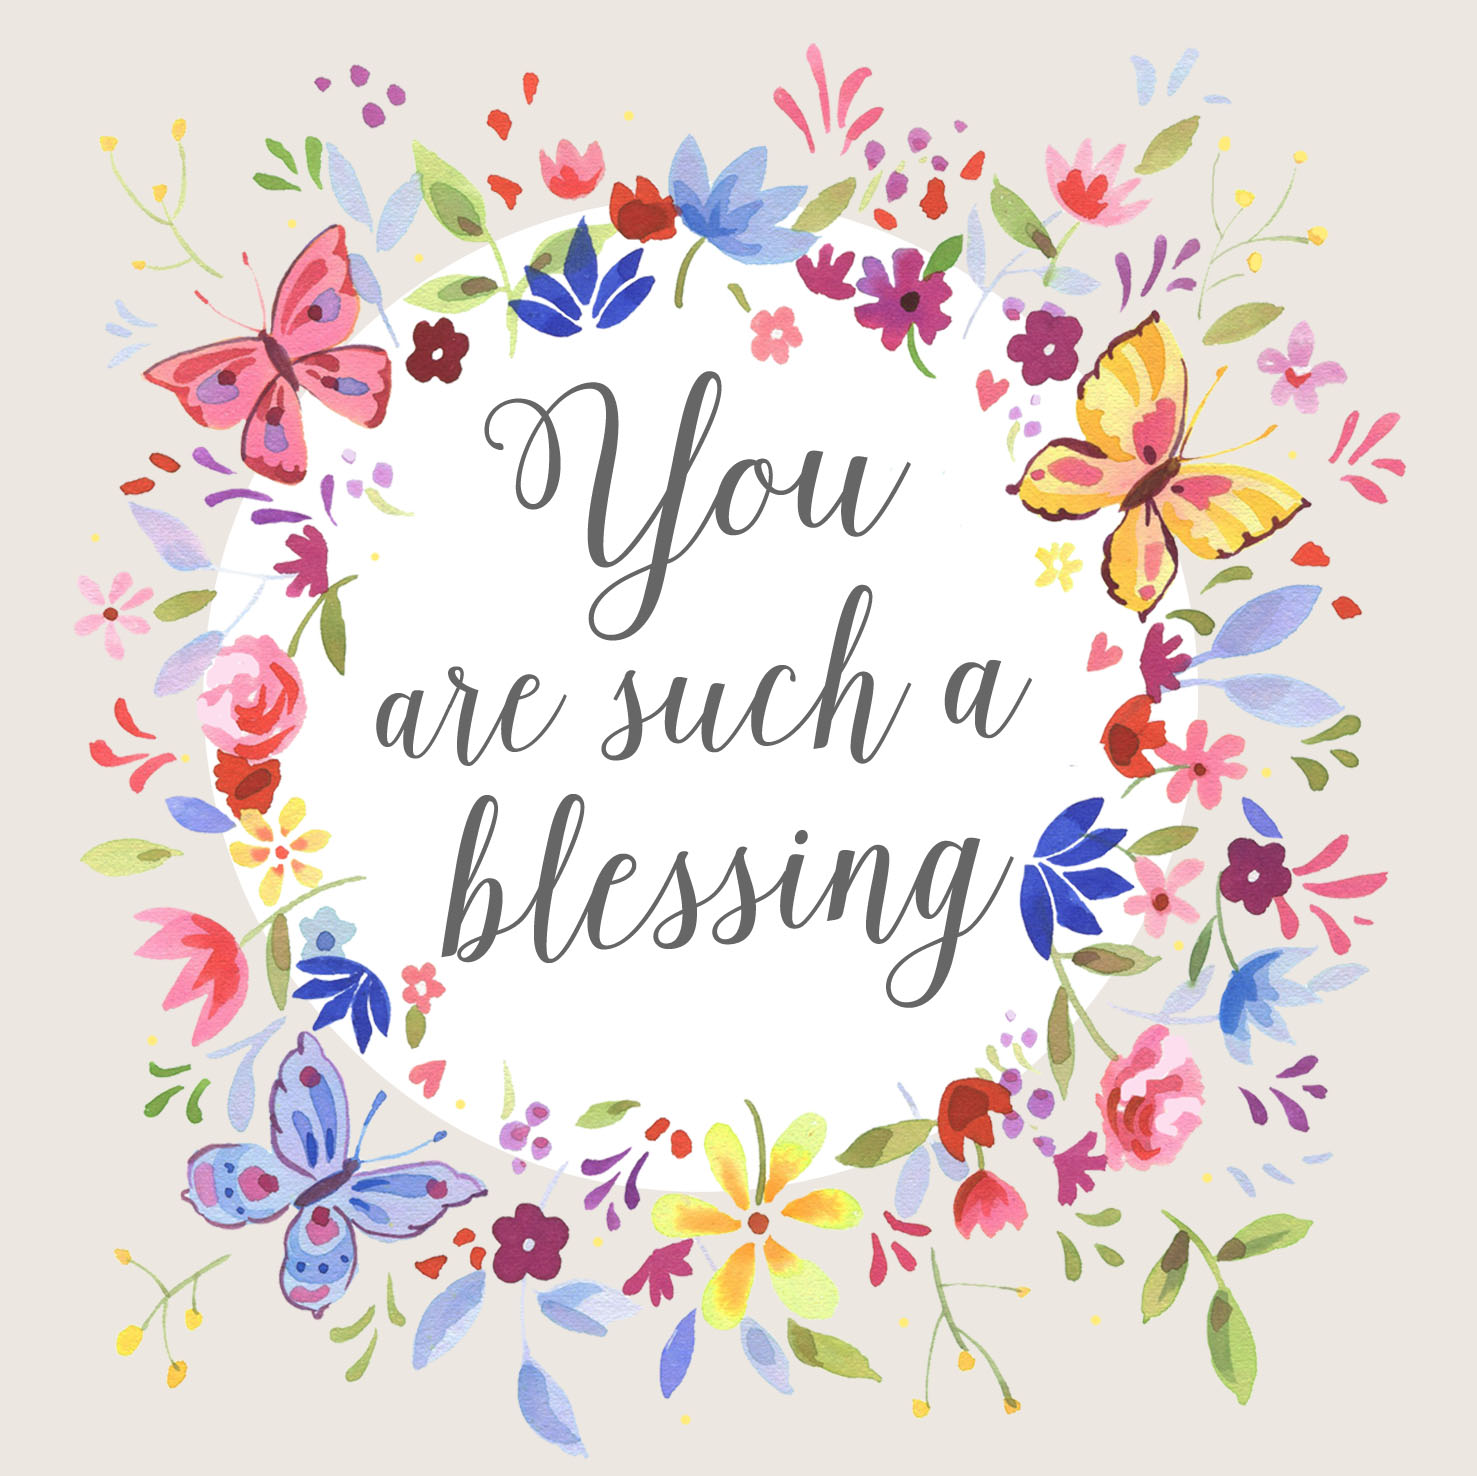 You are such a Blessing Single Card: Free Delivery when you spend £10  at Eden.co.uk